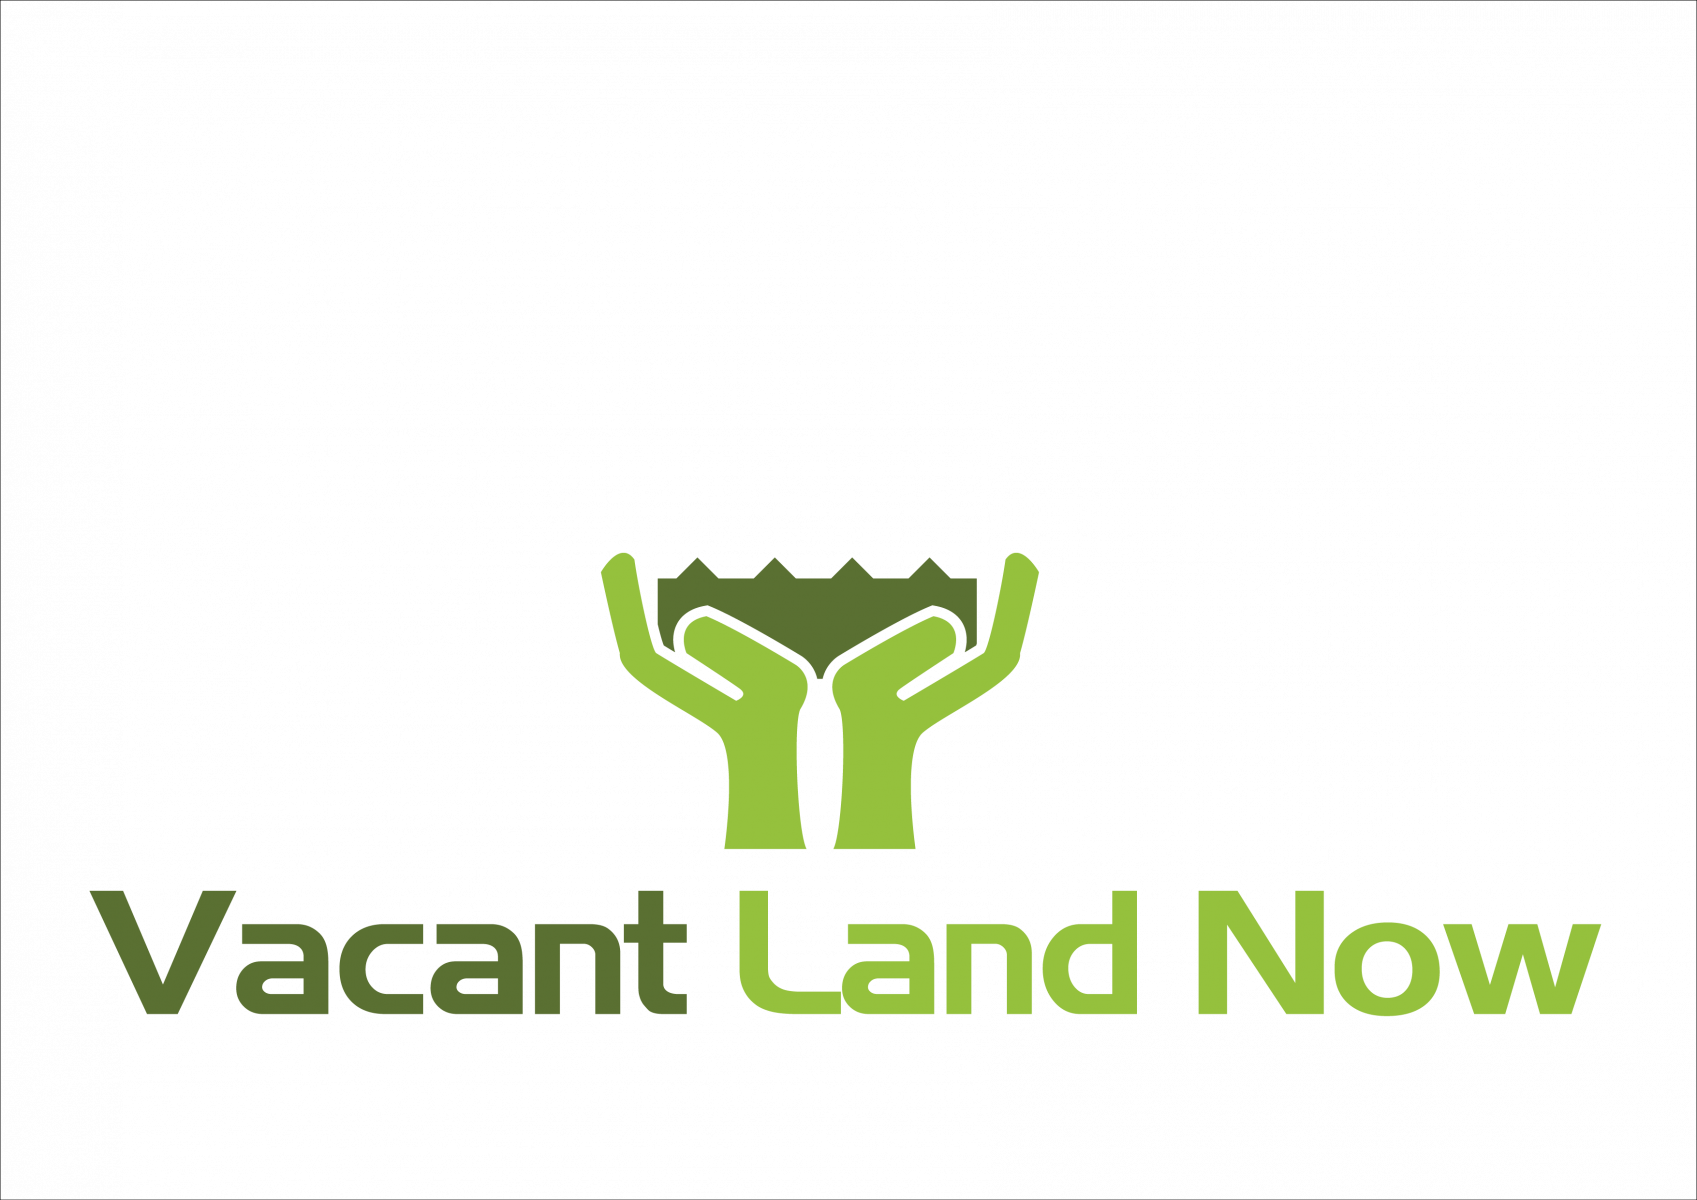 Vacant Land Now LLC logo